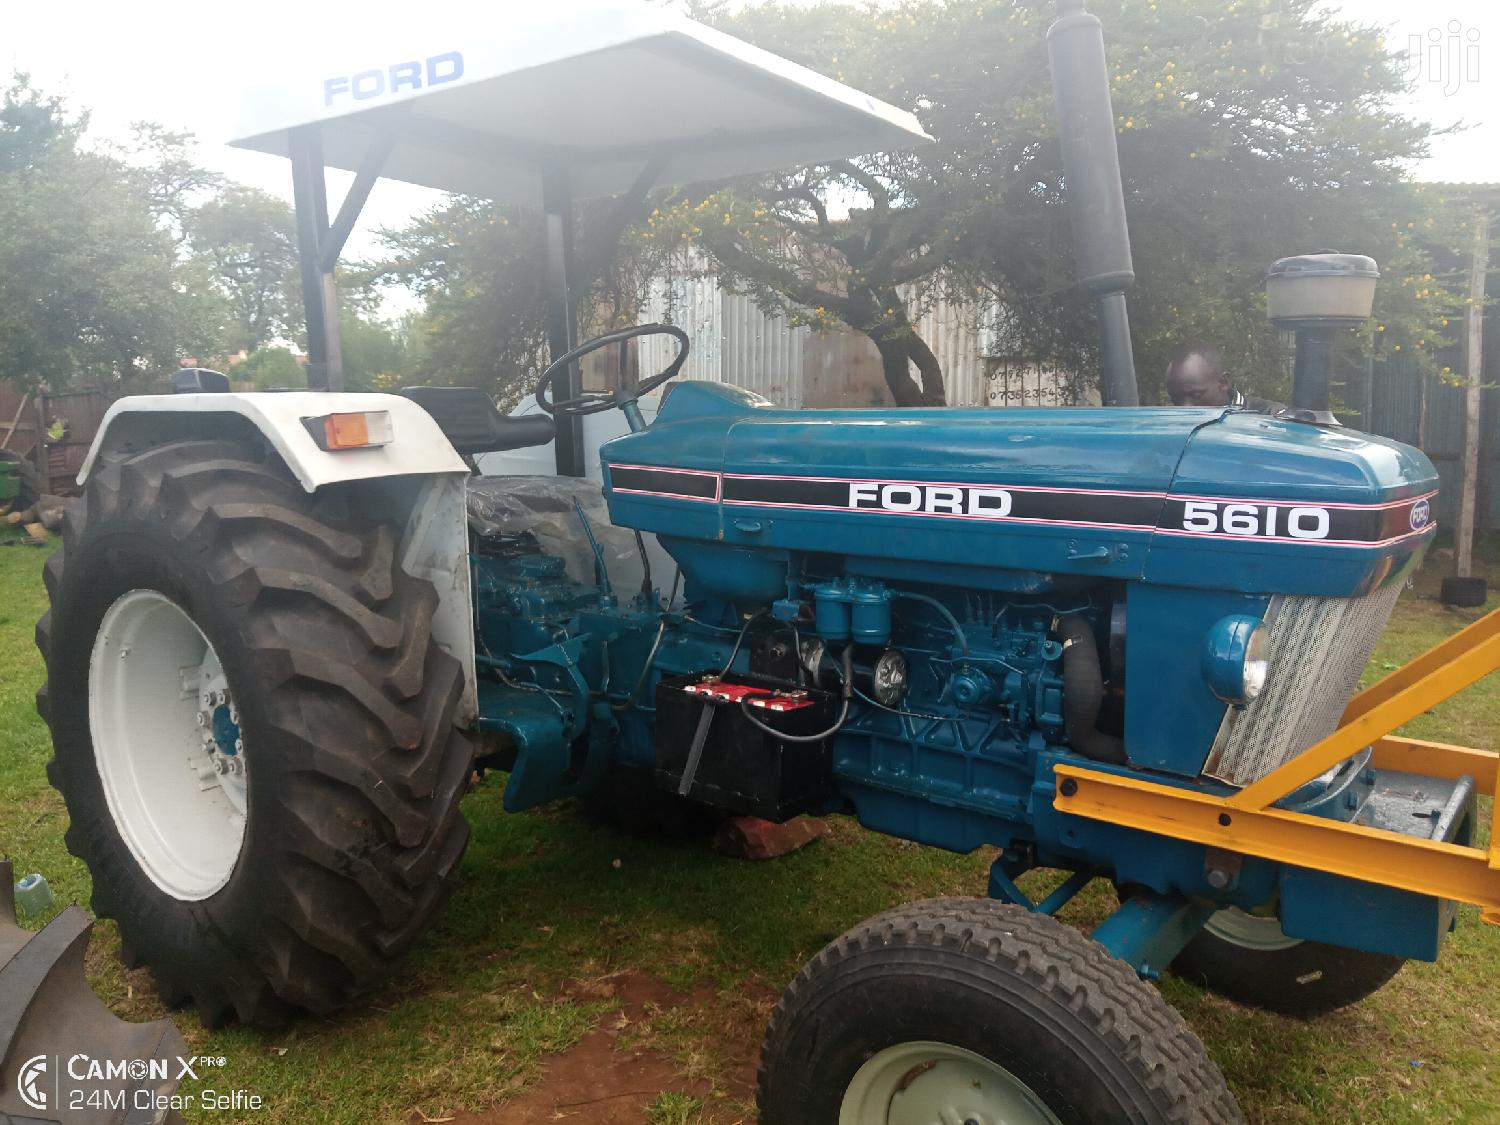 Ford 5610 Tractor 1986 Blue For Sale